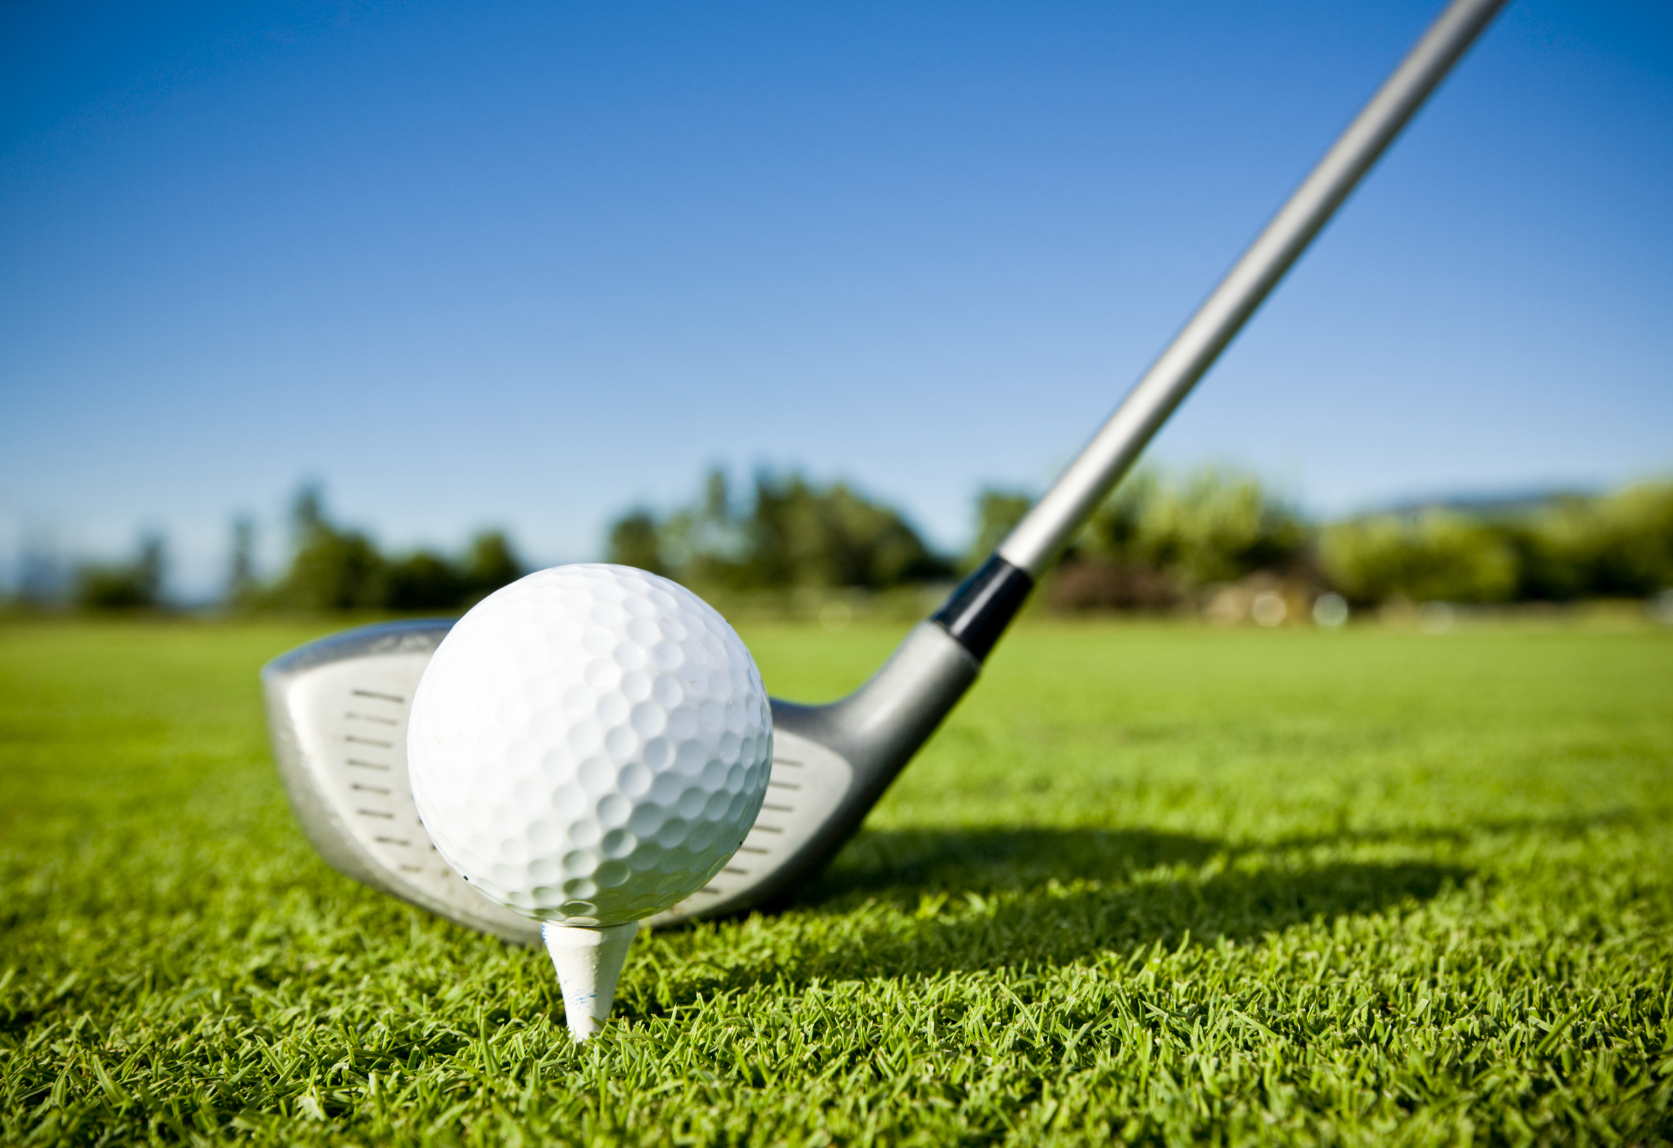 golf sport kent golfing sports balls club golfer sessions taster summer blogs lessons course outing tee